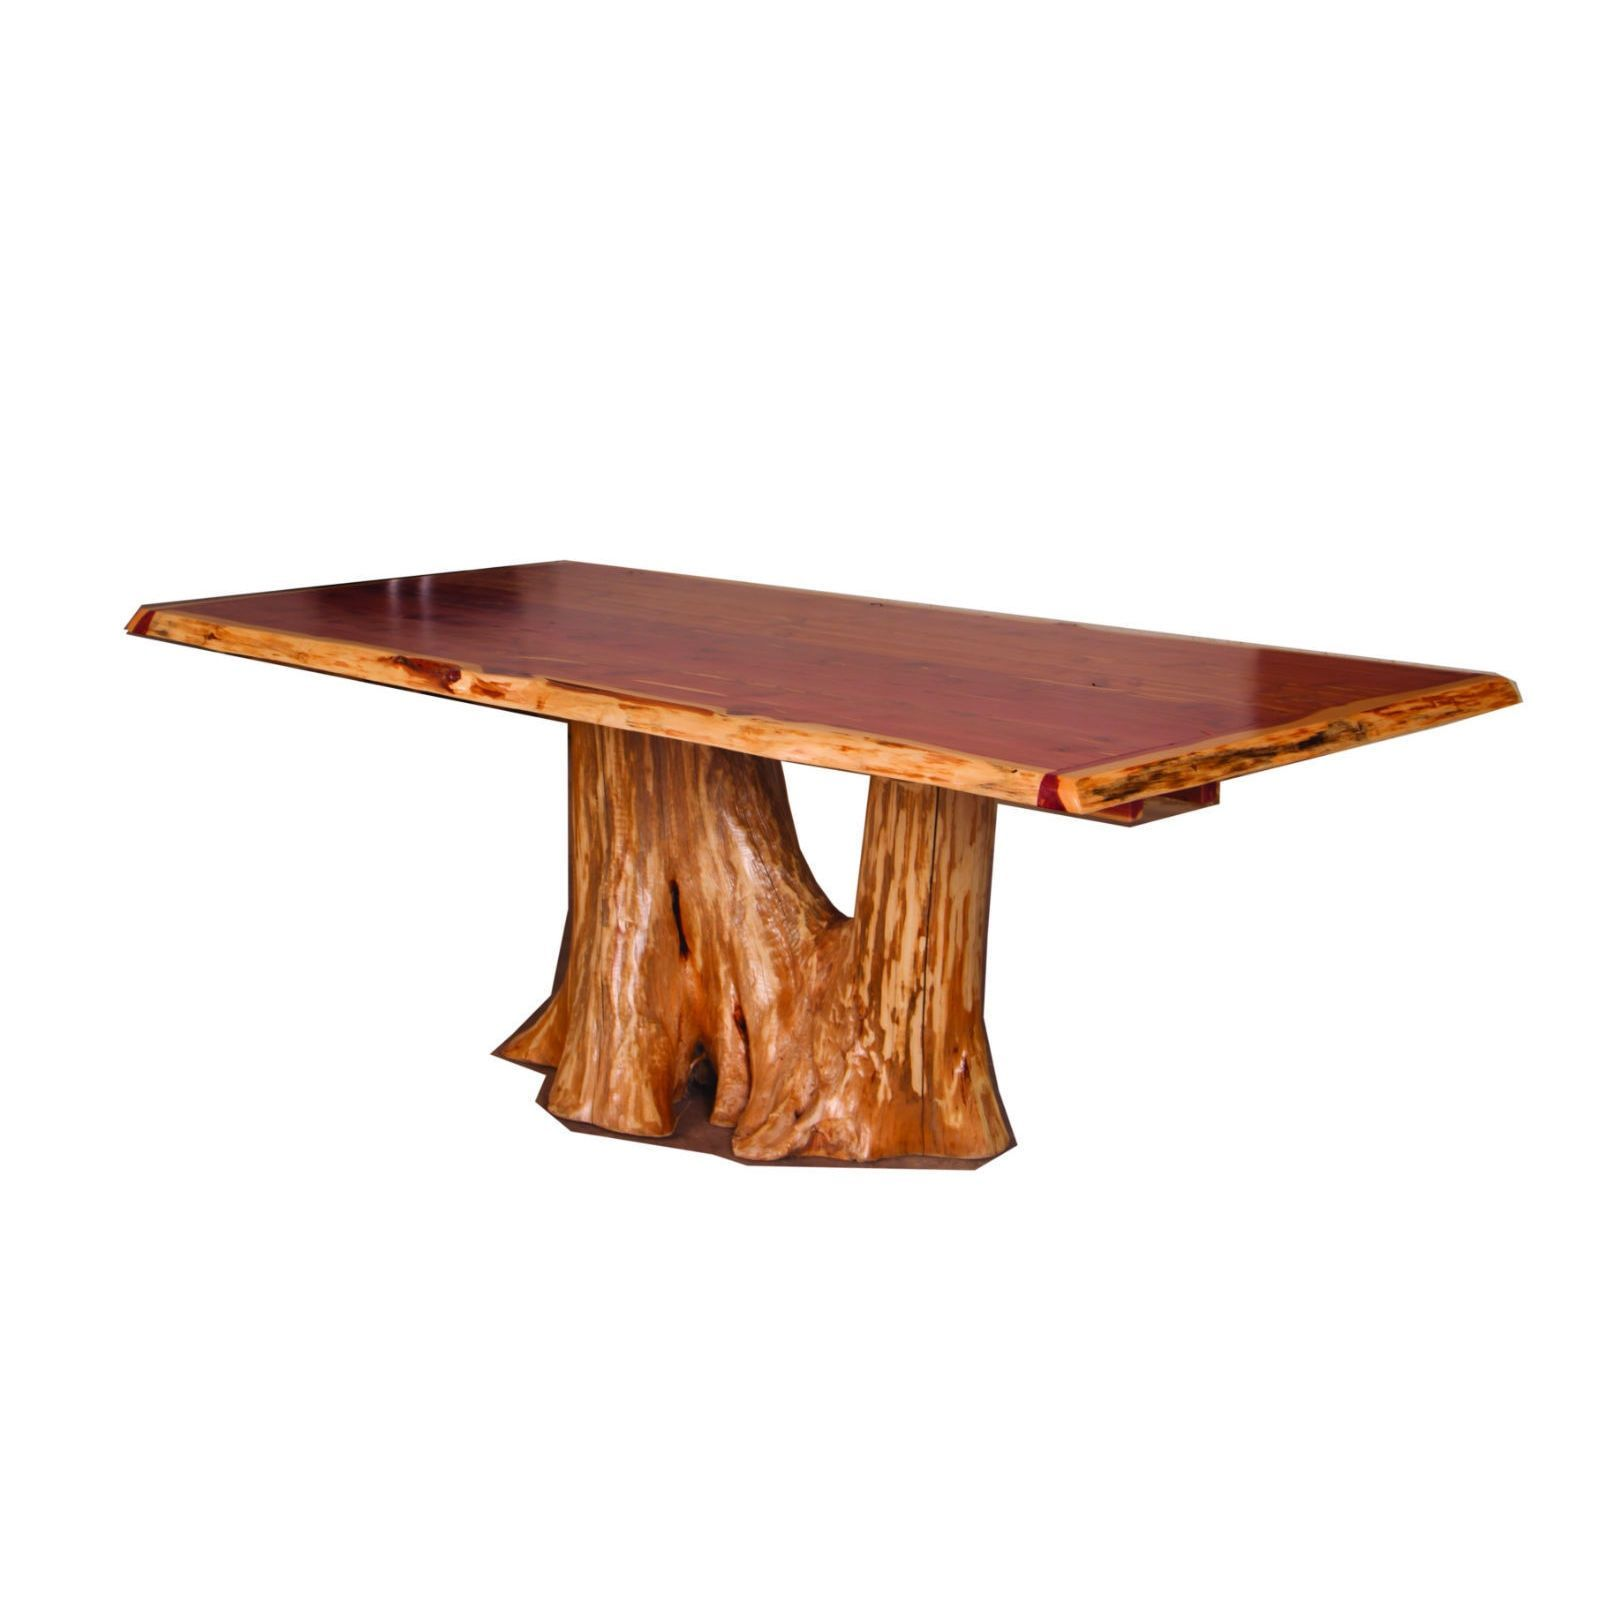 Beautiful Rustic RED Cedar LOG Tree Stump / Trunk Dining Table (Stump Table)